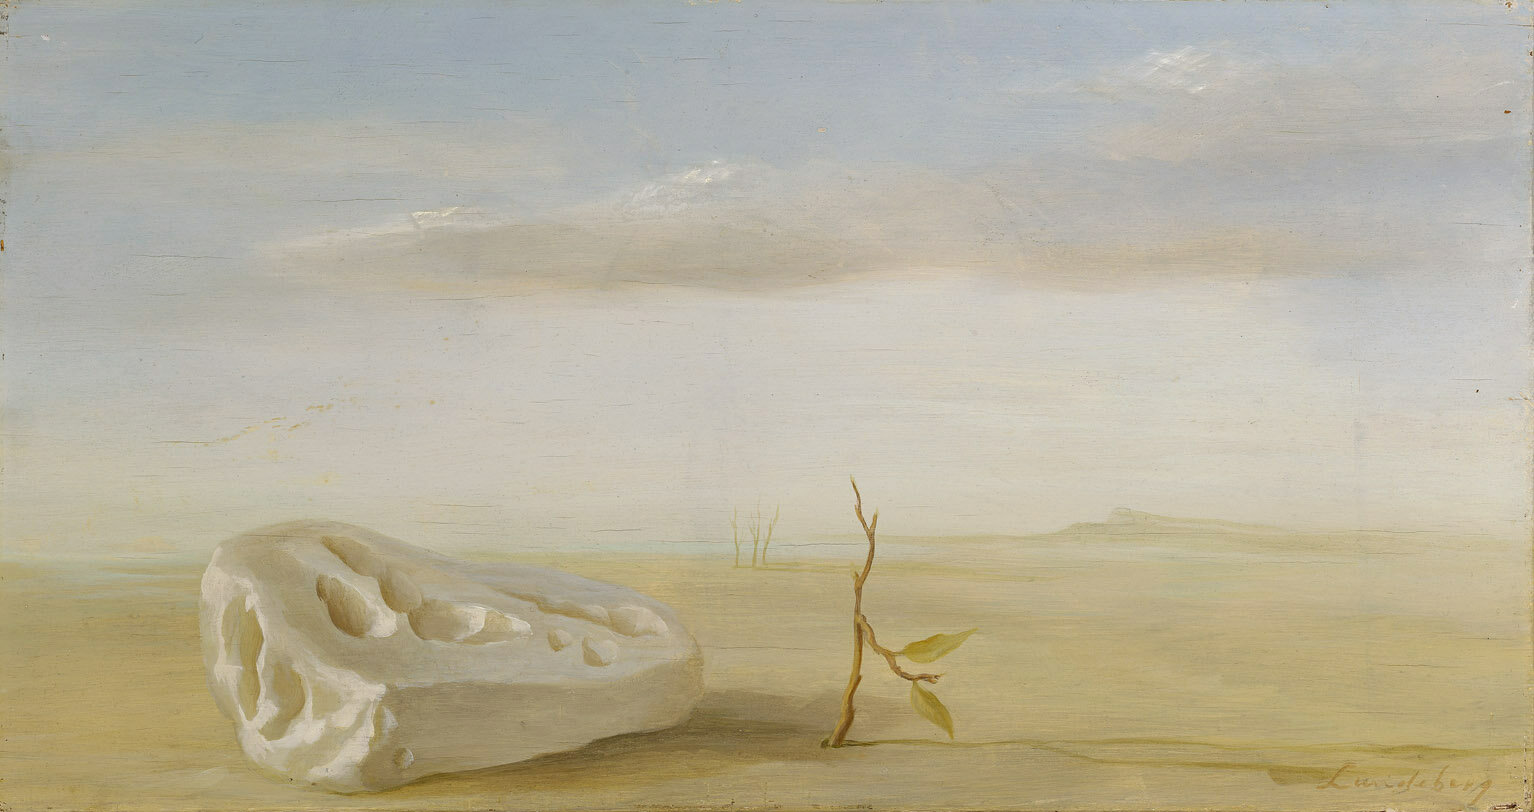 Untitled Composition (Landscape) , 1948  oil on board 10 1/4 x 19 1/4 inches; 26 x 48.9 centimeters